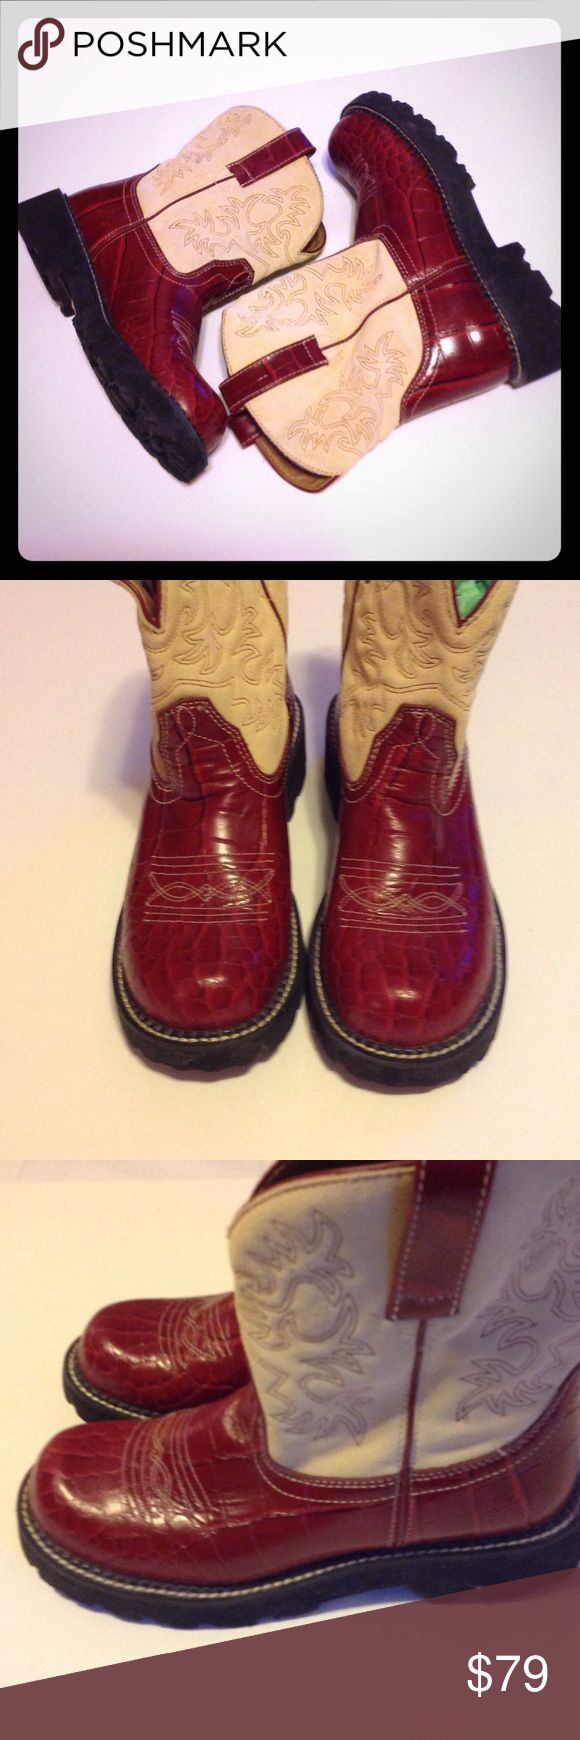 """Ariat Red Fatbaby Red Cowboy Boots NWOT Oh so stylish leather with suede upper(faux reptile). Crepe soles. Perfect condition!! Great pop of deep red color for that outfit! Beautifully designed boot! Heel 1.5"""" Ariat Shoes Ankle Boots & Booties"""